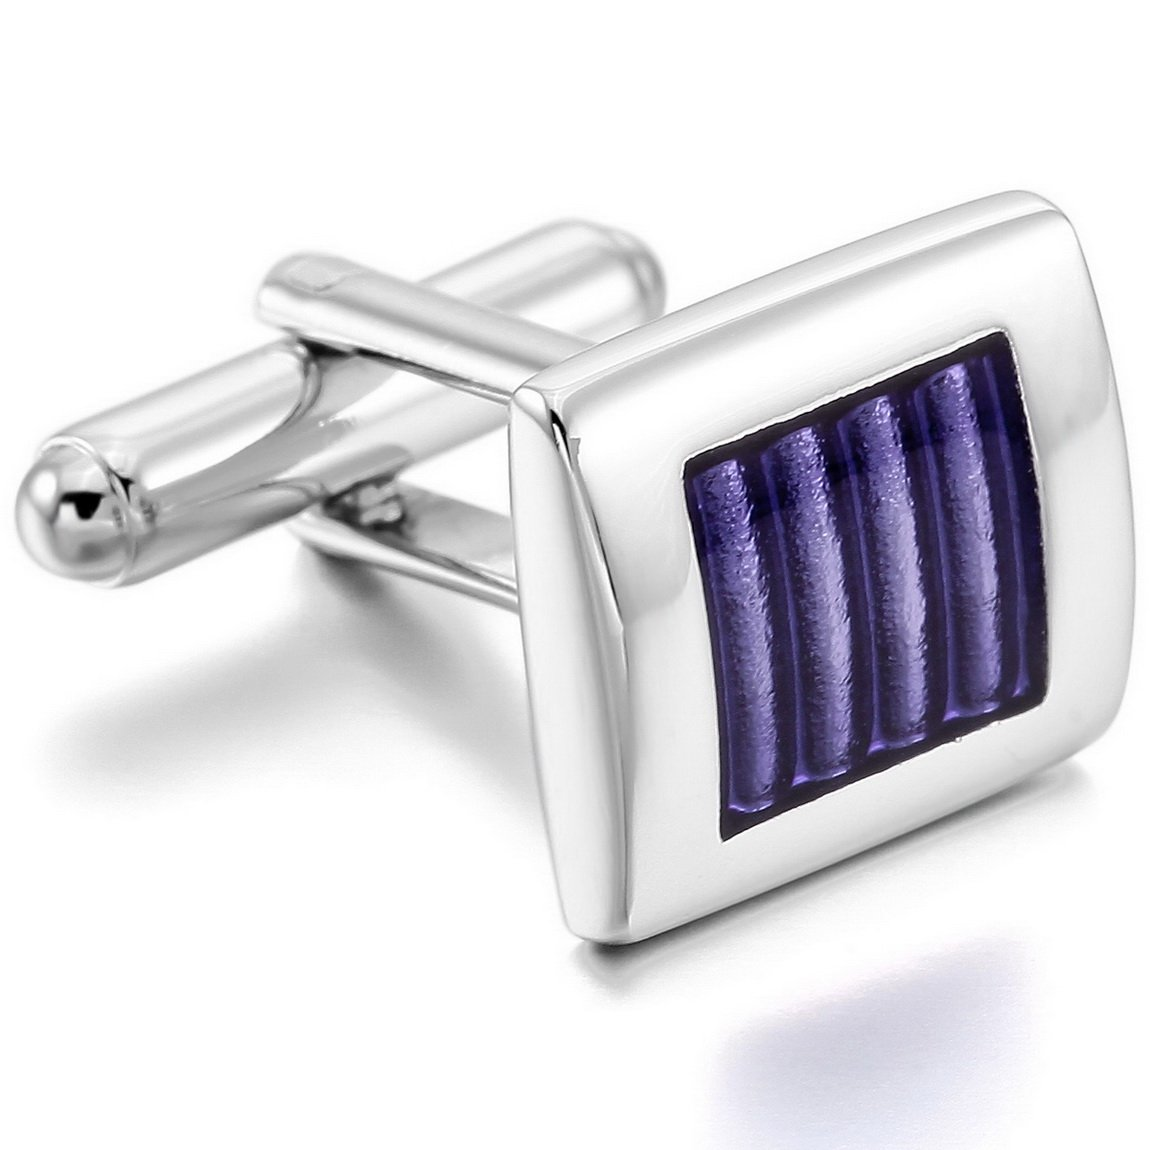 INBLUE Men's 2 PCS Rhodium Plated Enamel Cufflinks Silver Tone Purple Striped Shirt Wedding Business 1 Pair Set INBLUE Jewelry mnv0579